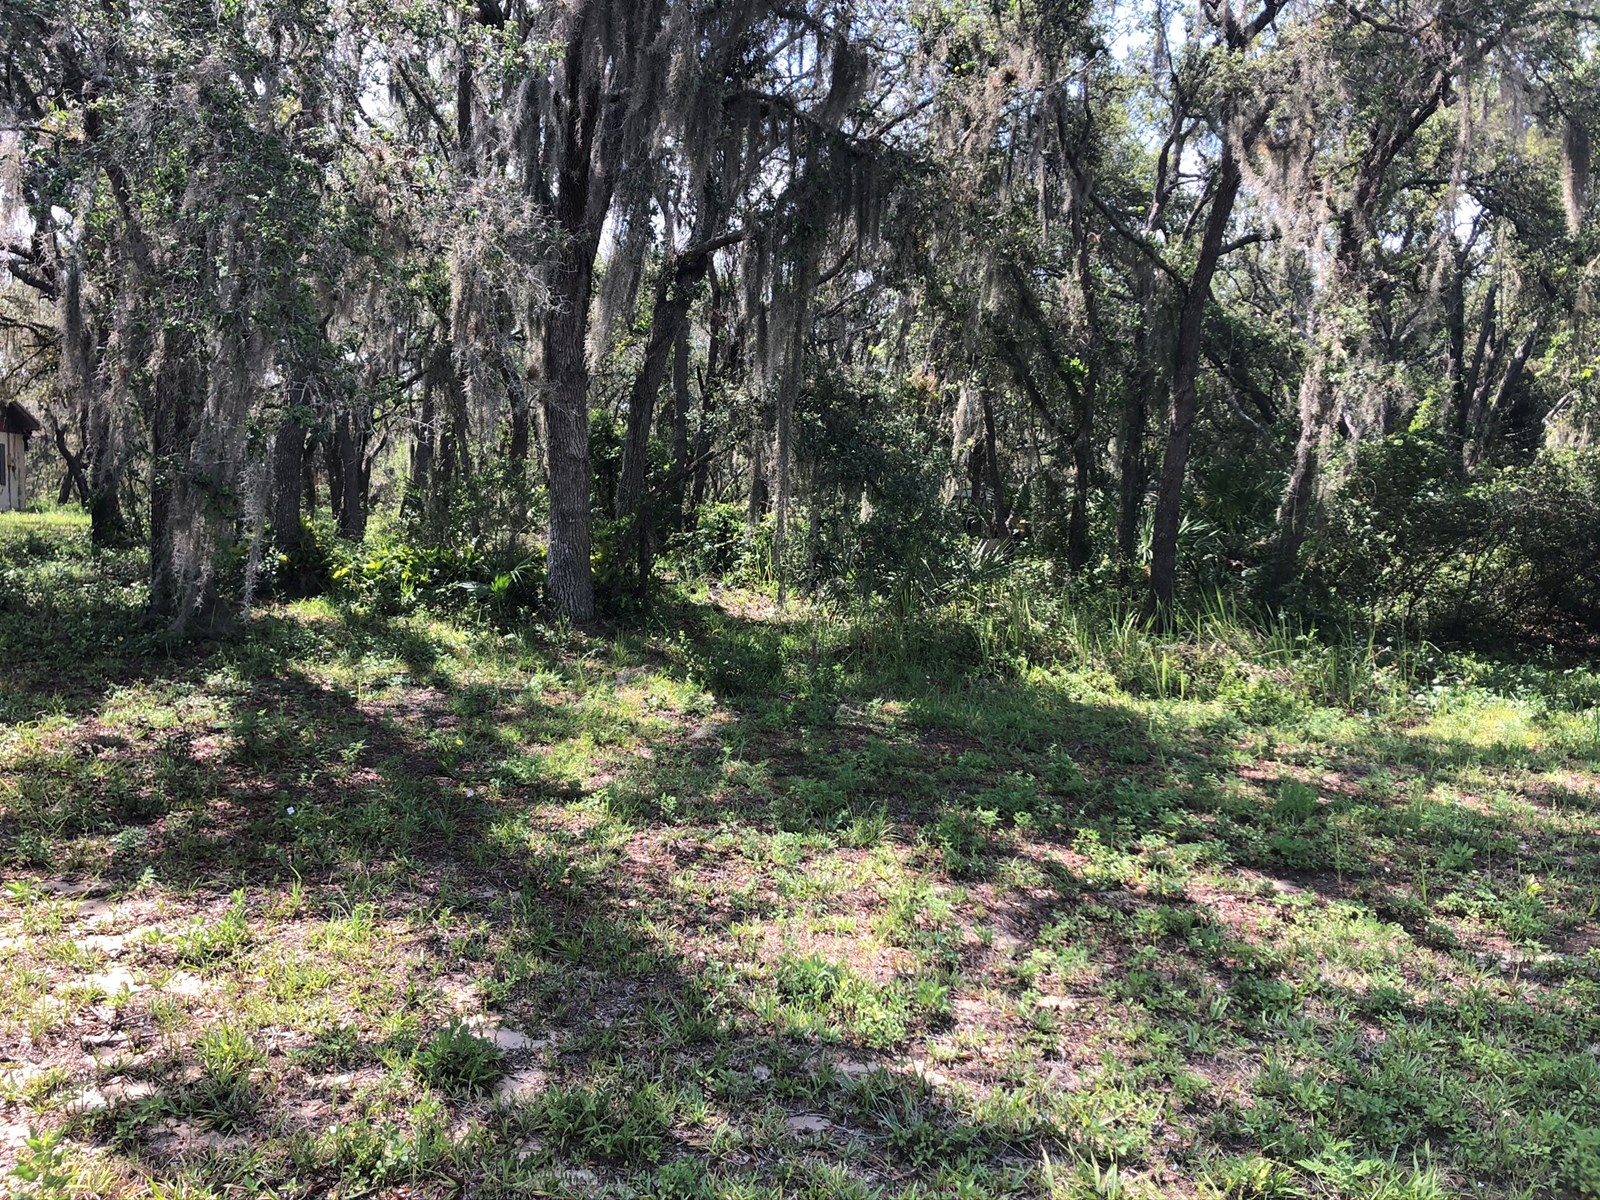 1.43 ACRES CENTRAL FL, BLUE JORDAN FOREST, EASY ACCESS